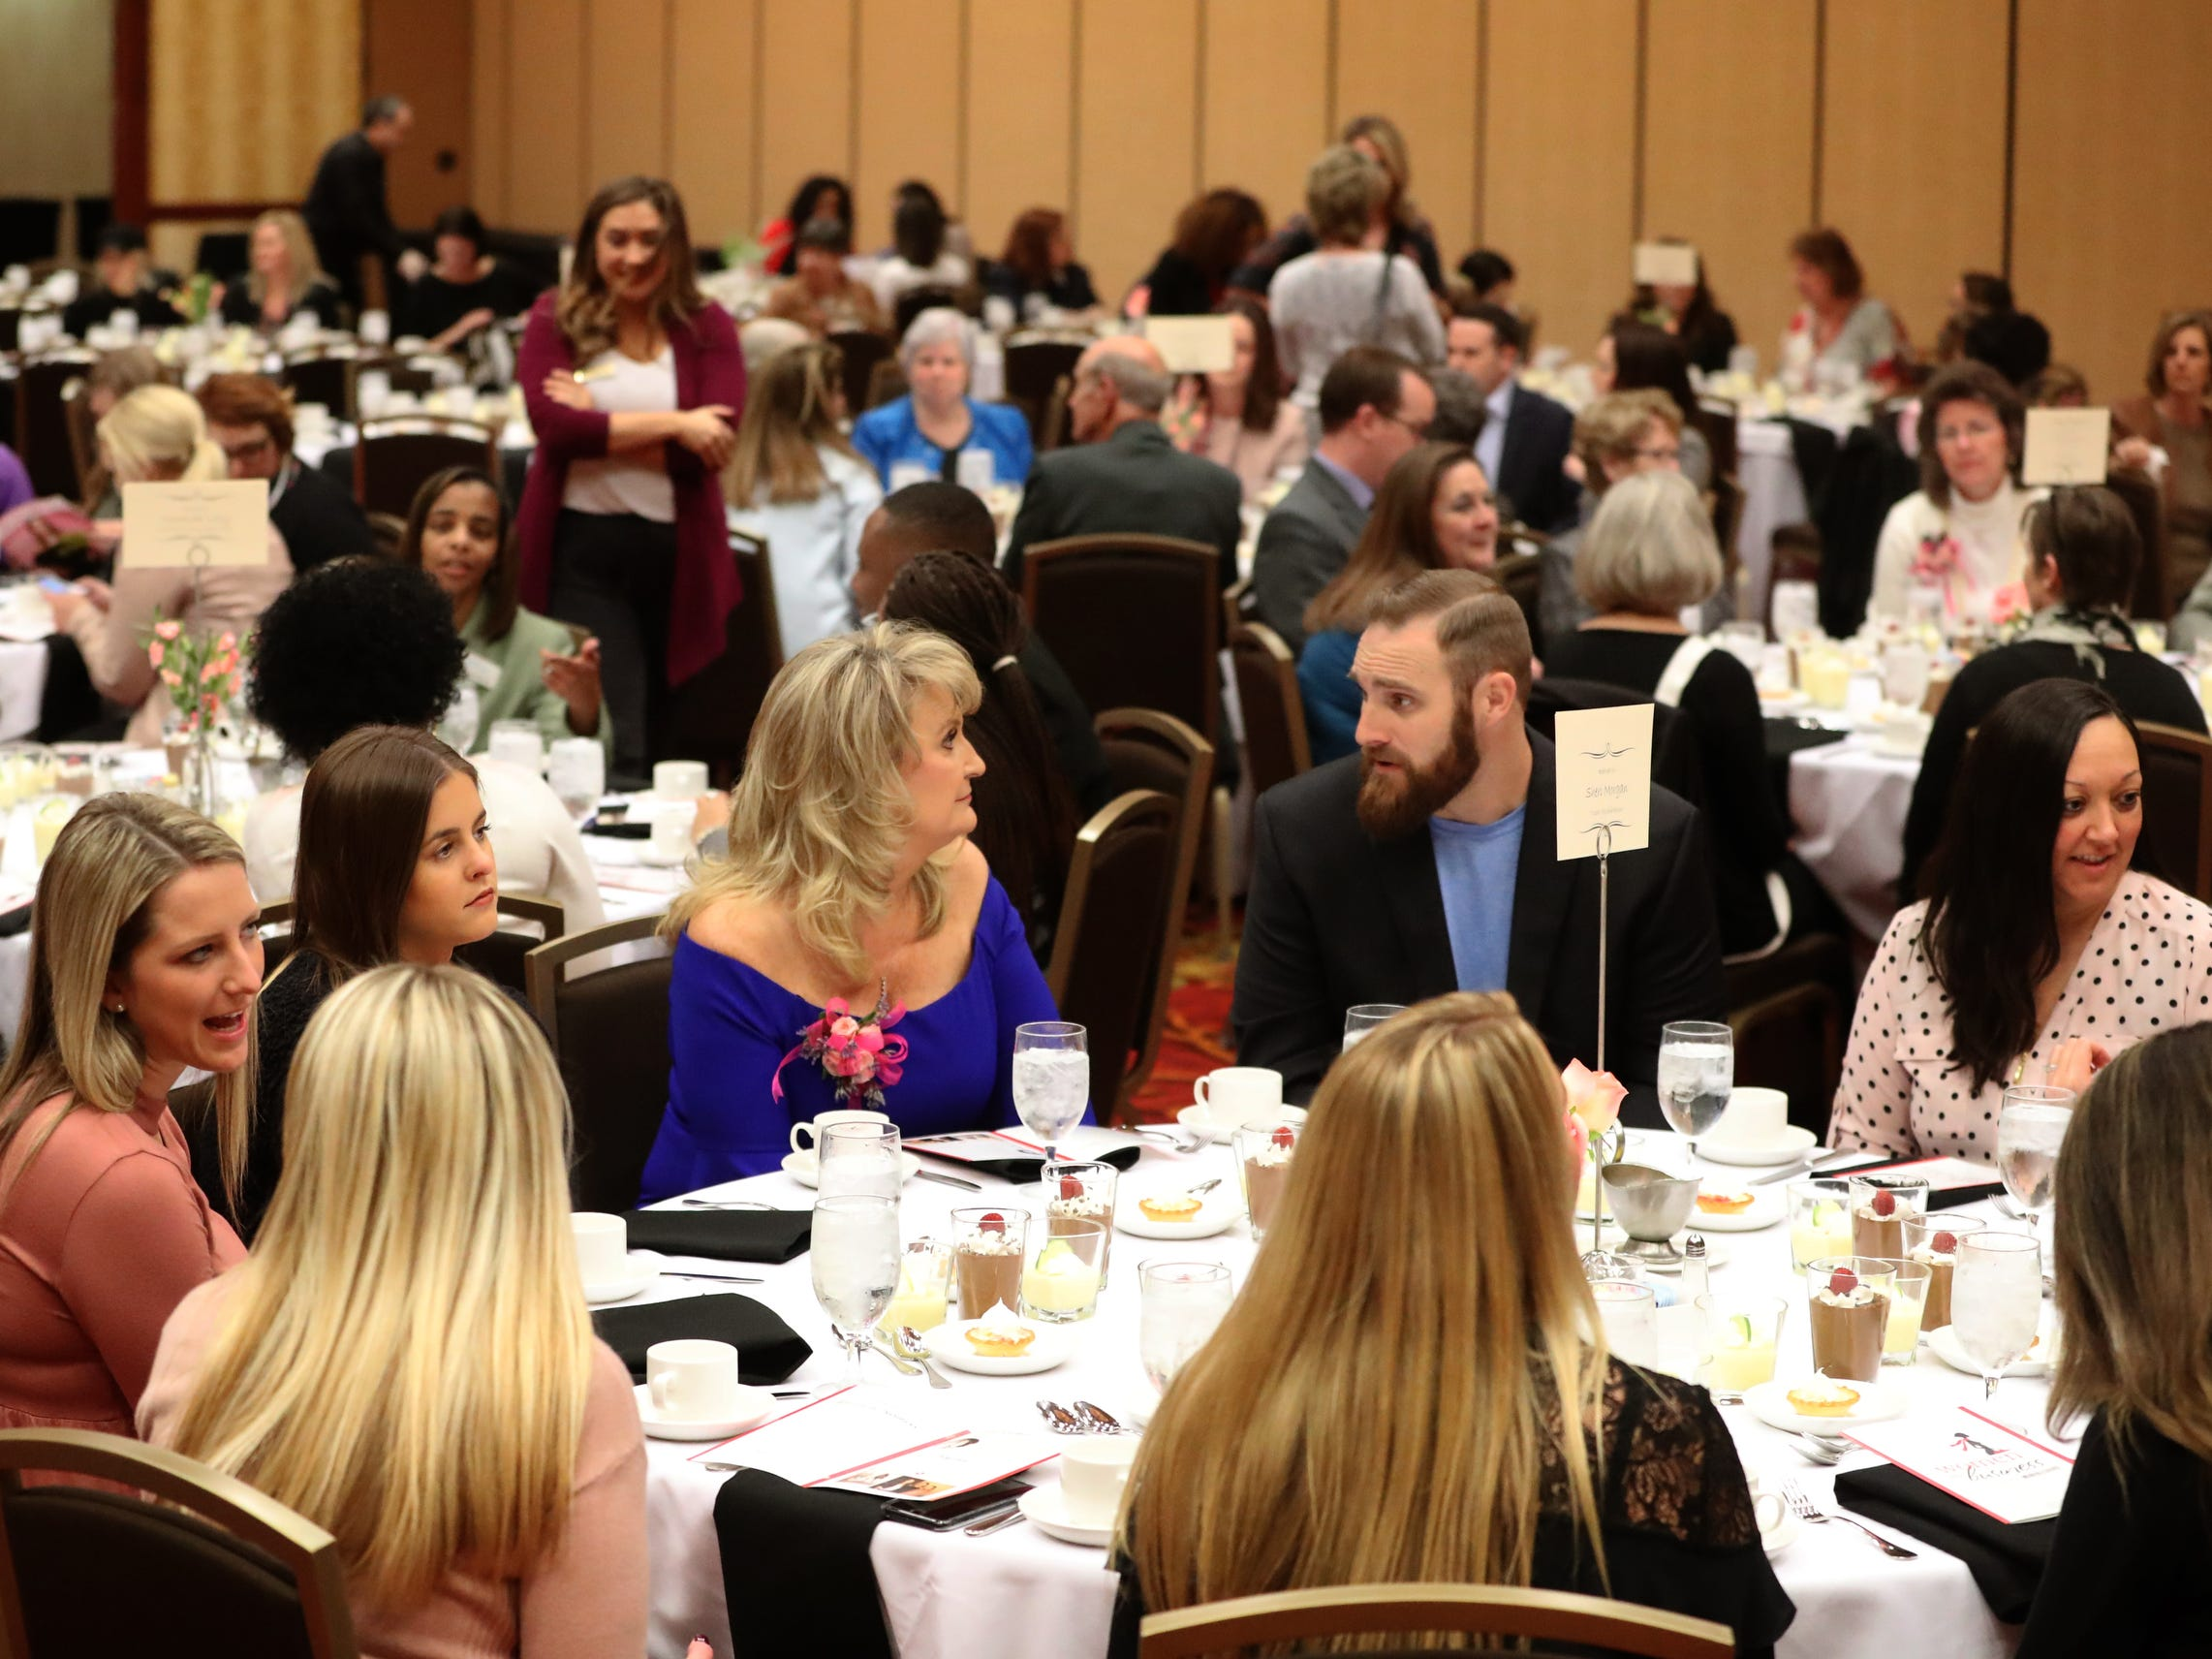 Murfreesboro Magazine held the 2019 Women in Business Luncheon on Tuesday, March 12, 2019, at the Embassy Suites Murfreesboro.